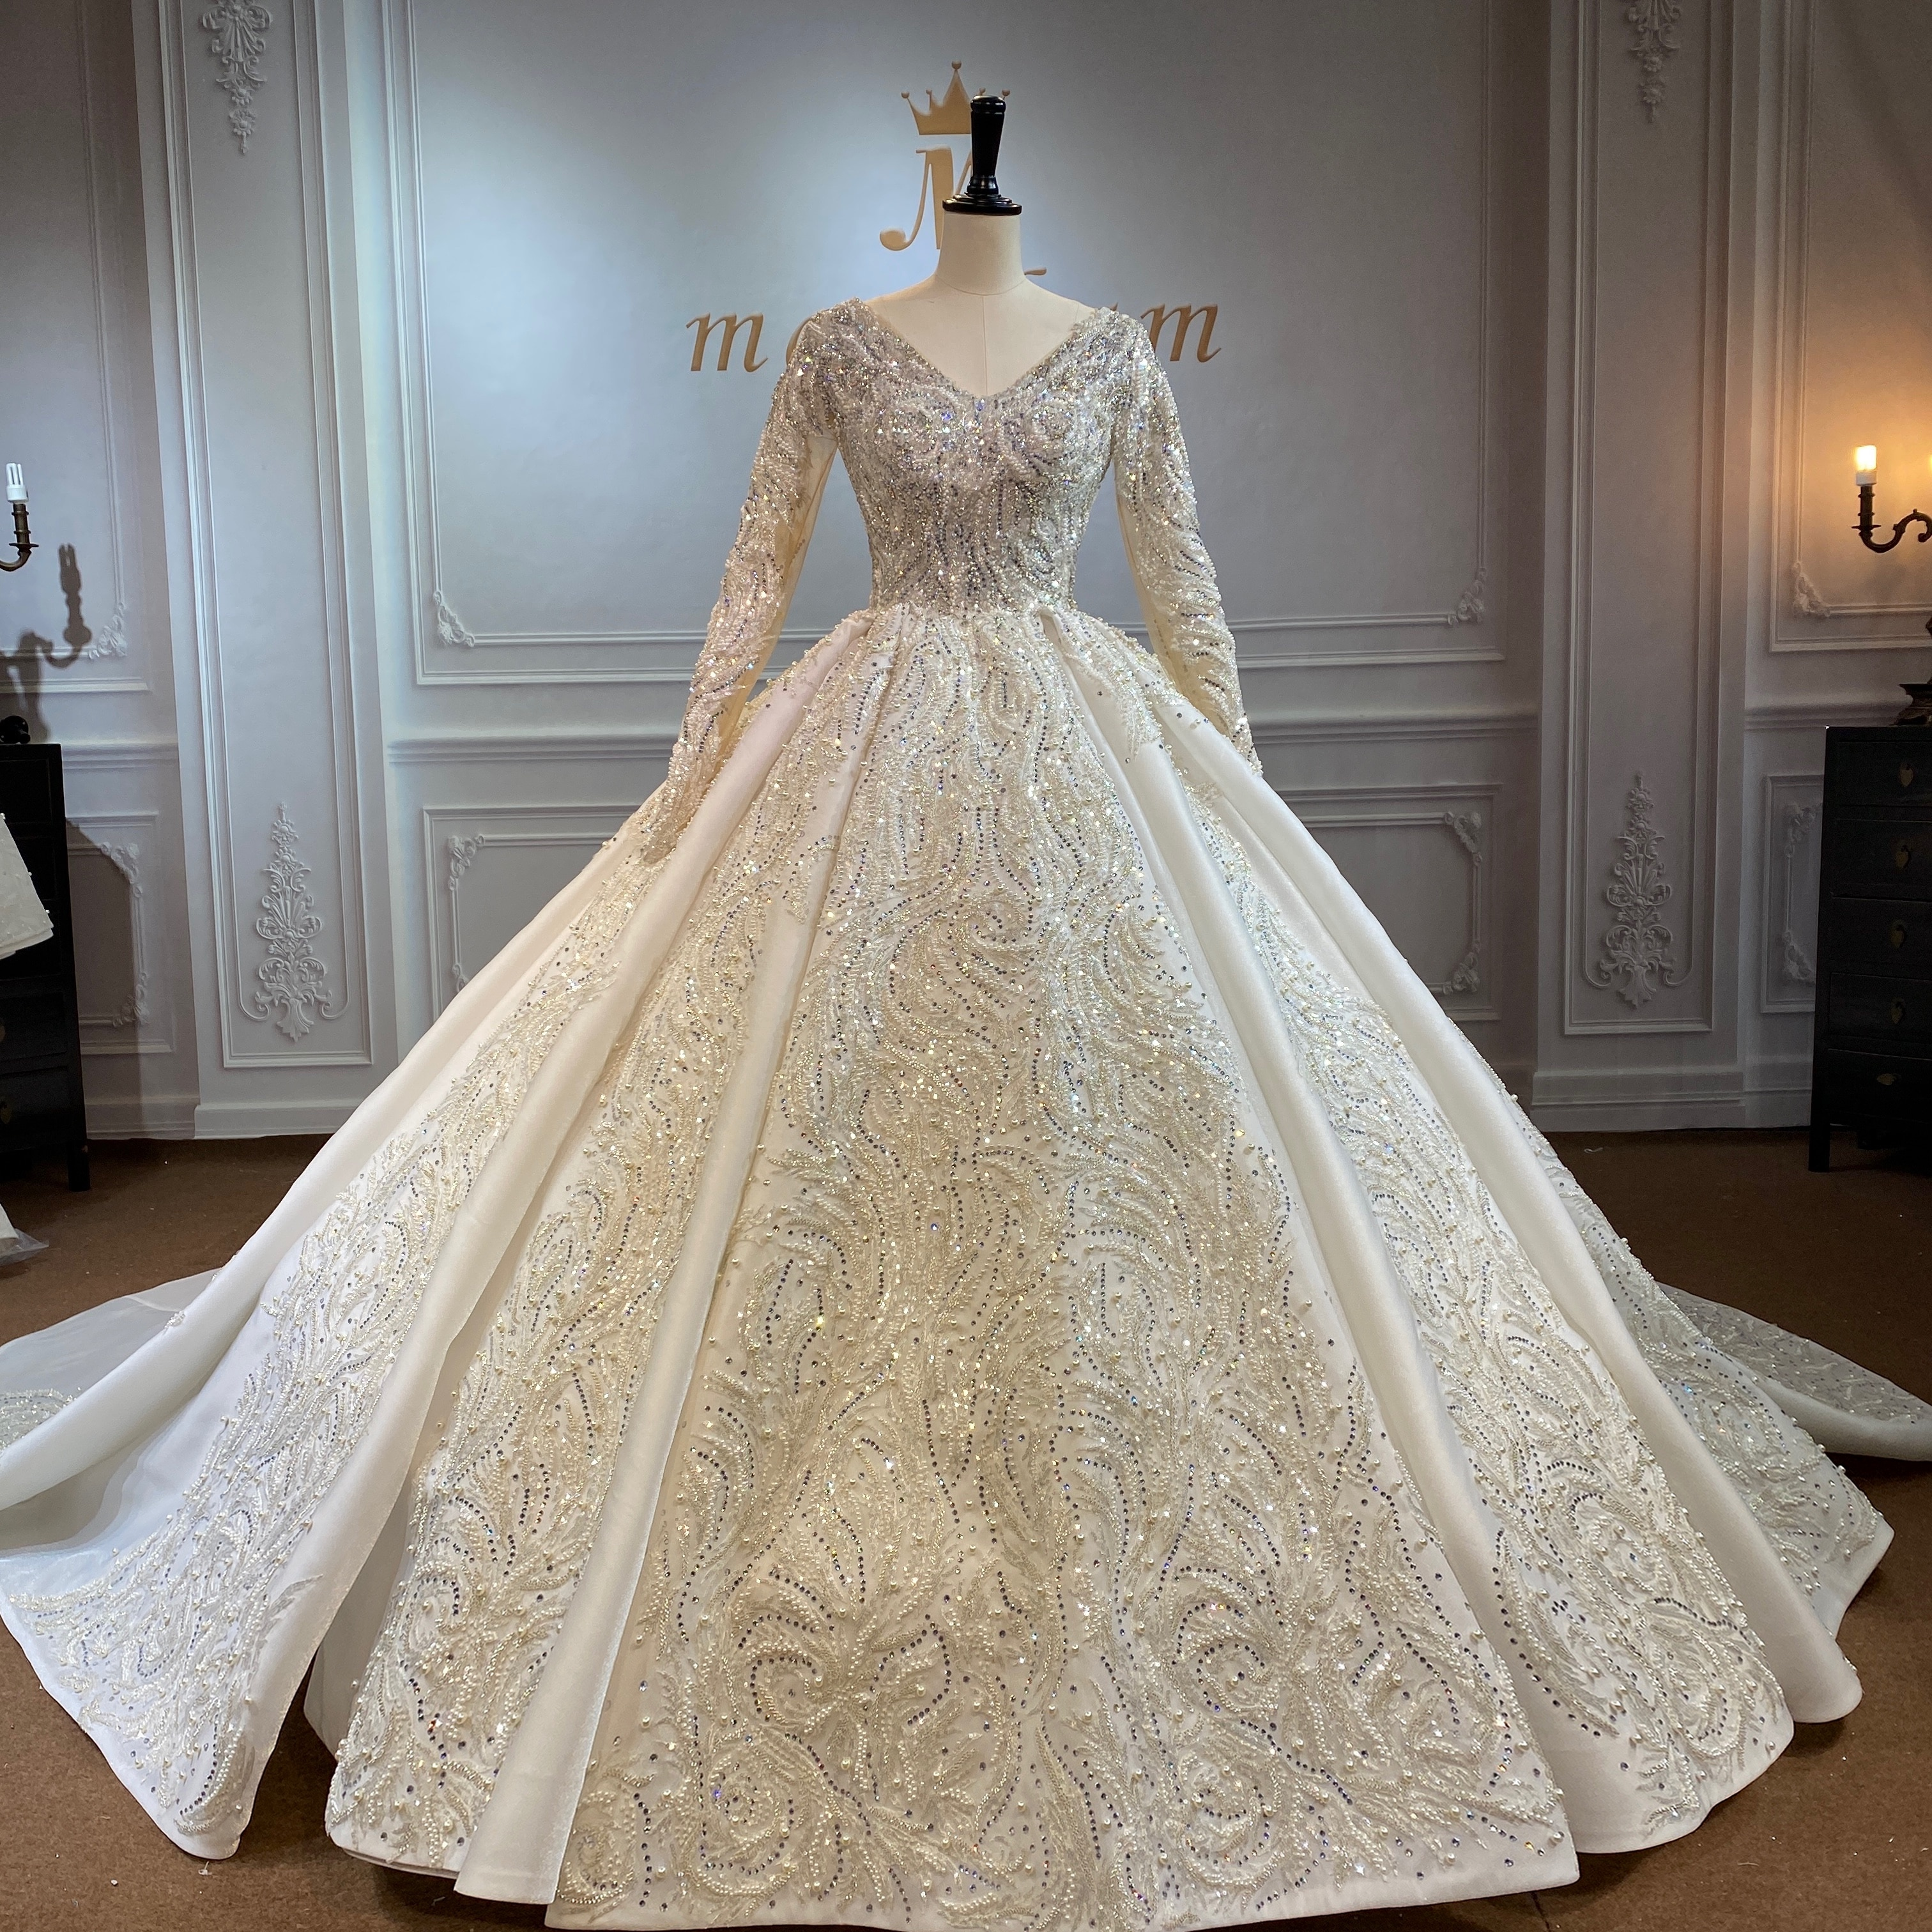 Marnham Spring Wedding Gown Ivory Bride Dress With Long Train And Sleeves Full Beads Real Work Photo